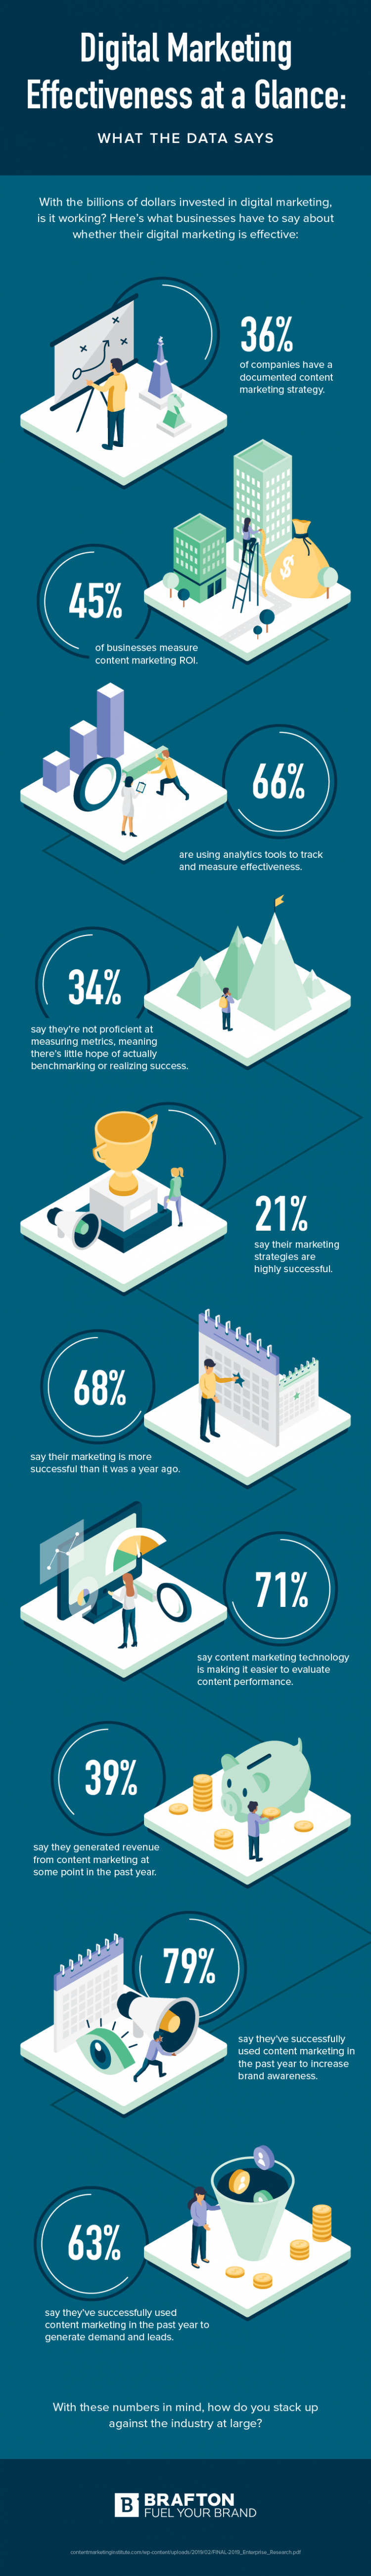 How to measure digital marketing effectiveness infographic